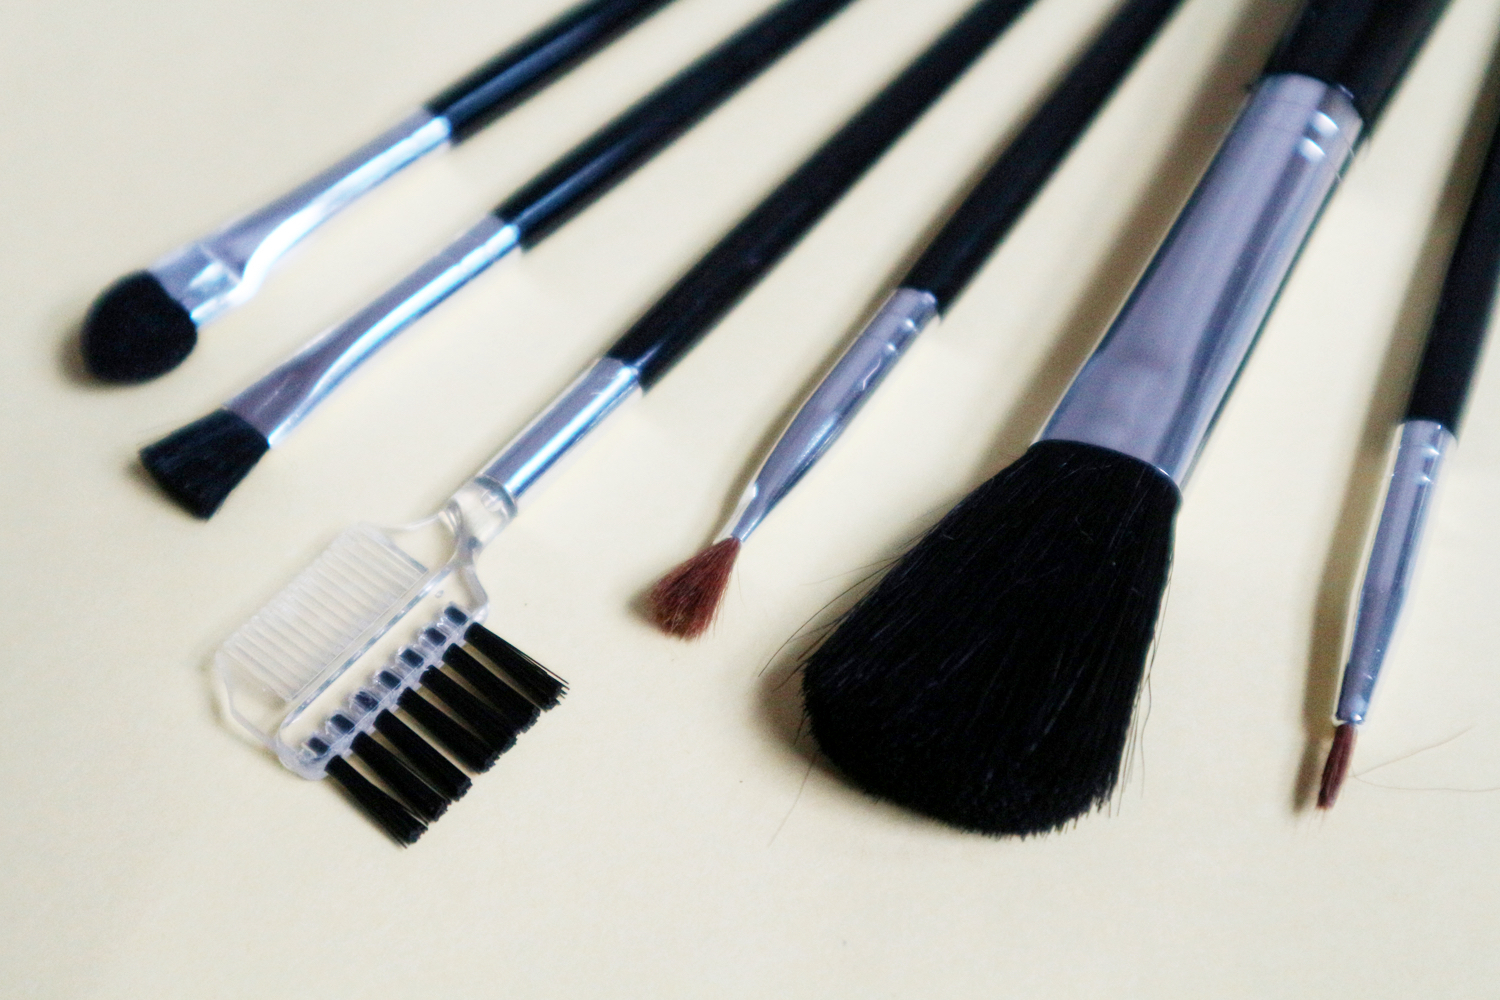 These are supposed to be brand new brushes but they look more beat up than Manny Pacquiao